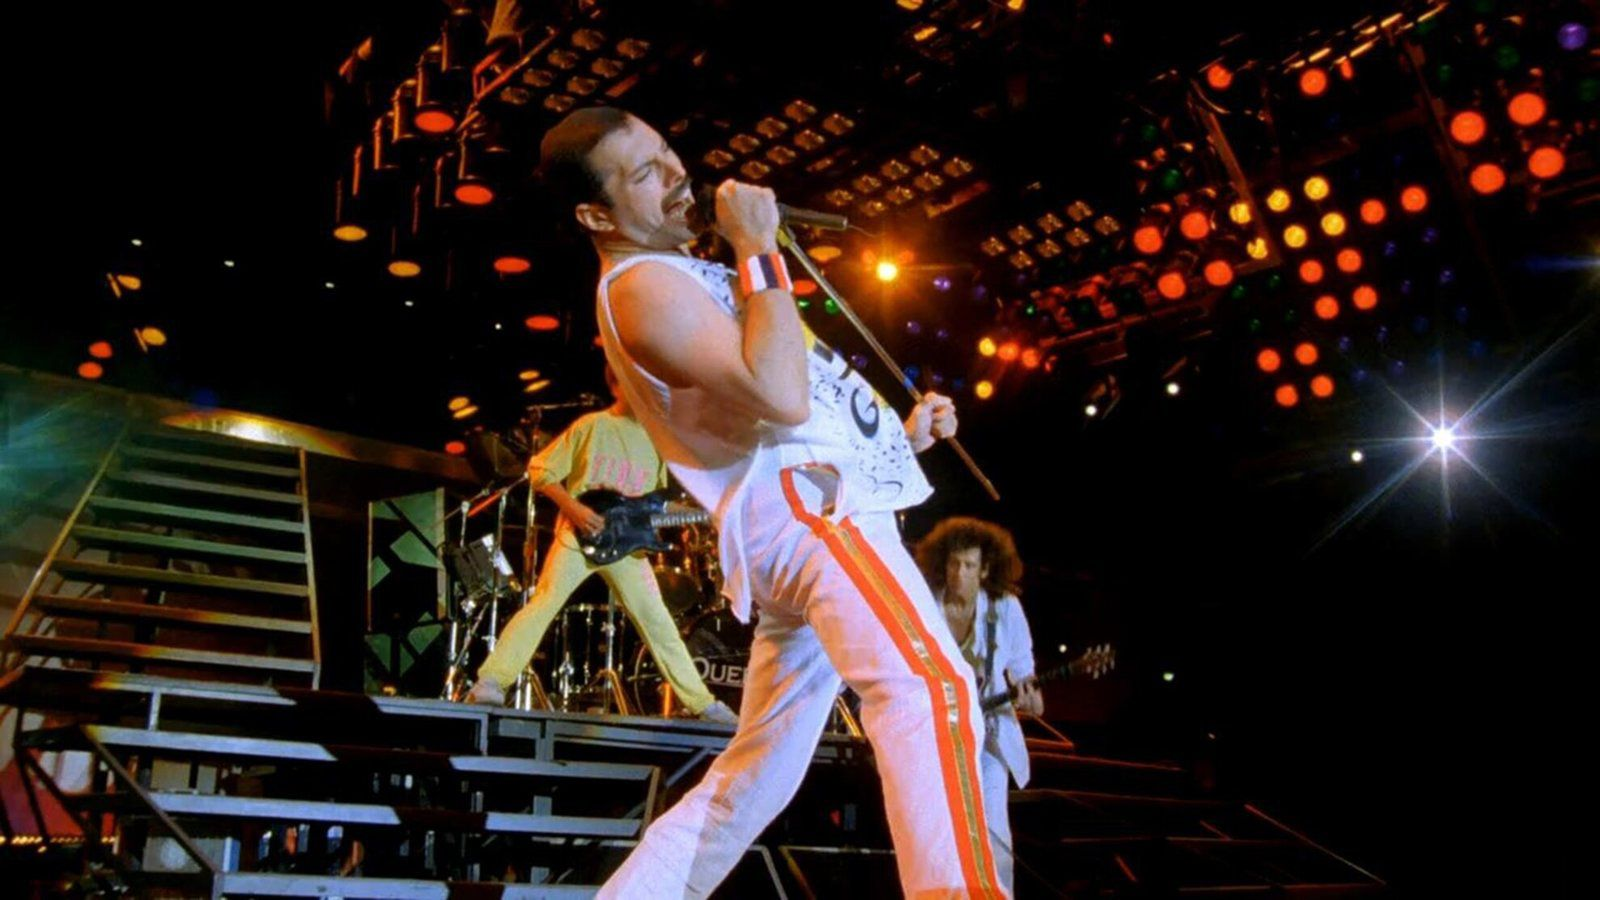 Queen : Hungarian Rhapsody - Live in Budapest